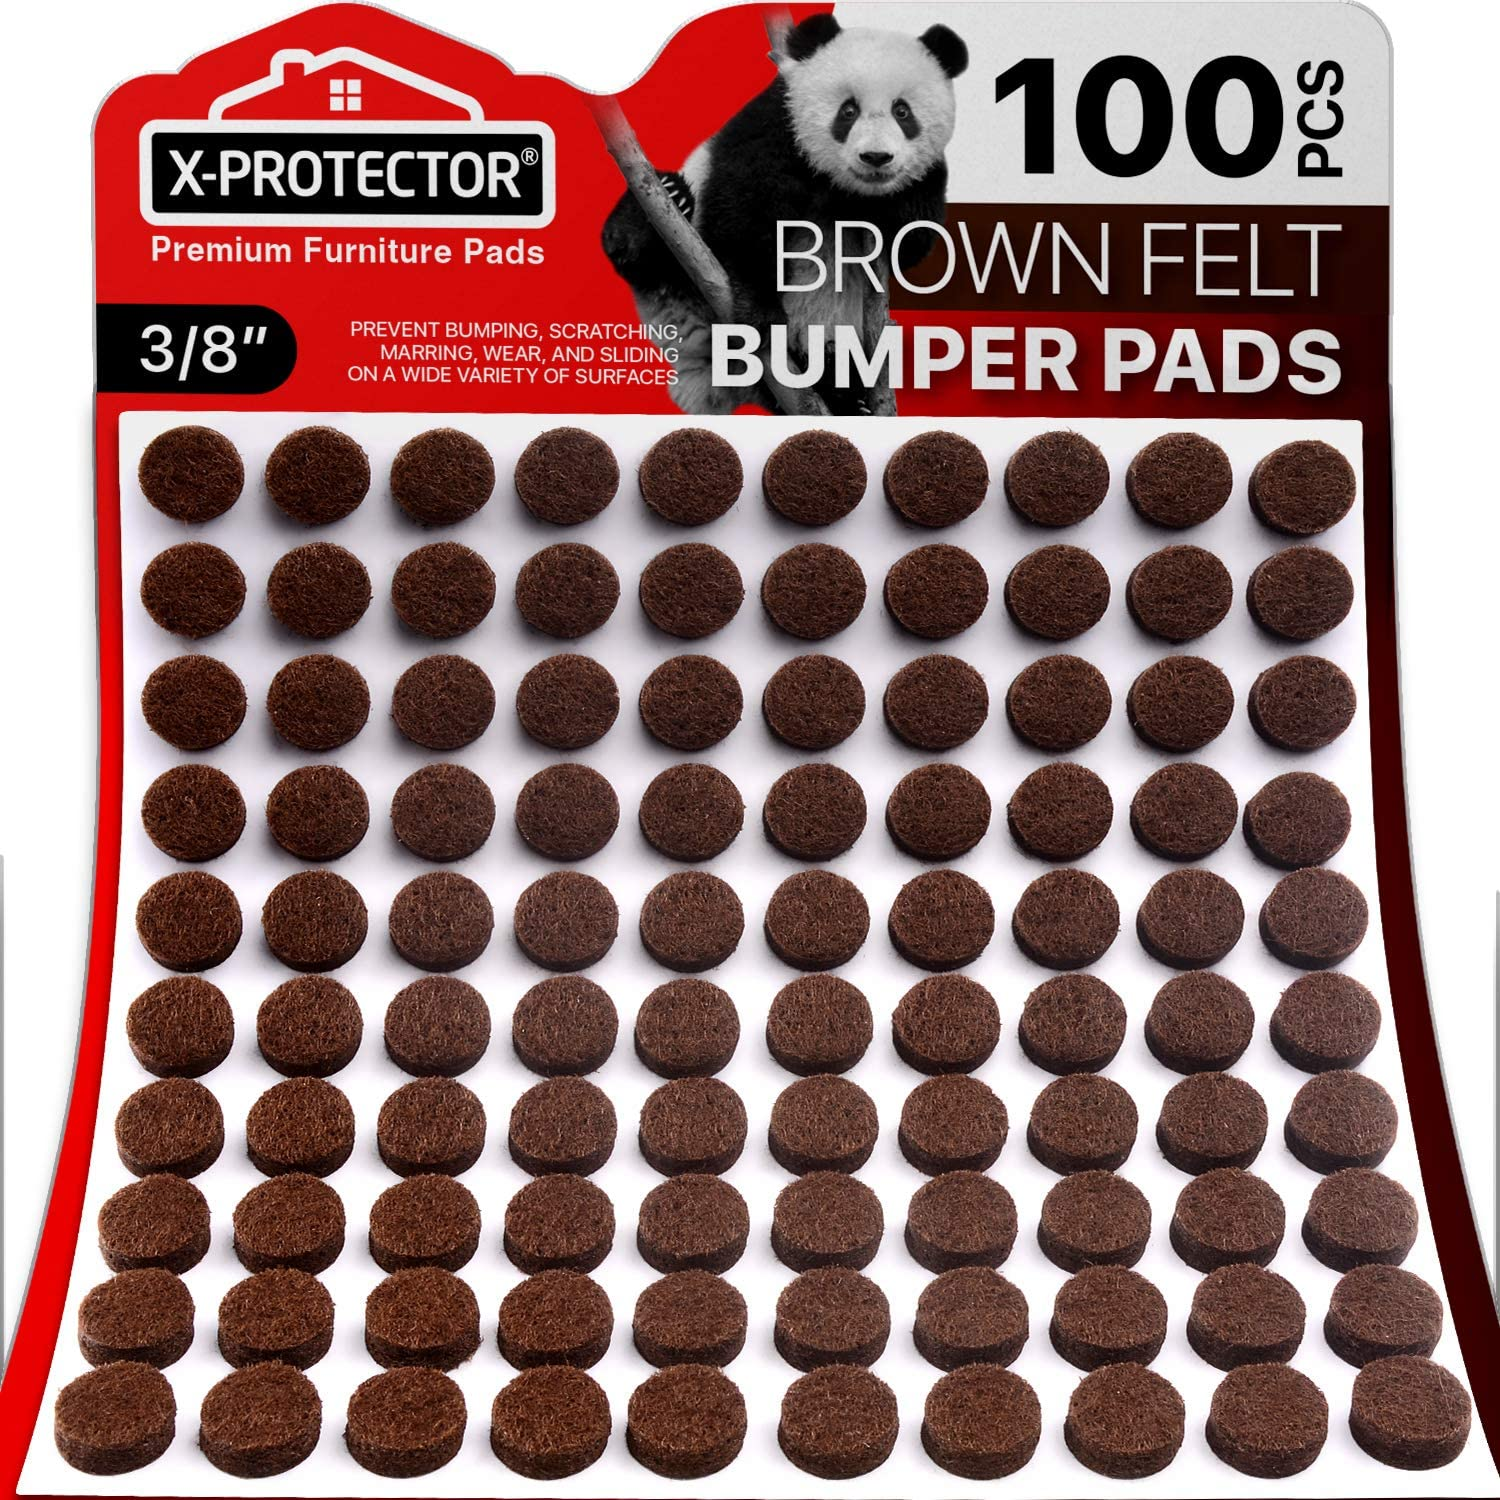 """Cabinet Door Bumpers X-Protector – Small Felt Pads 3/8"""" – 100 PCS Ideal Felt Bumpers – Self-Adhesive Thick Felt Dots – Bumper Pads to Protect Glass & Other Surfaces (Brown)!"""